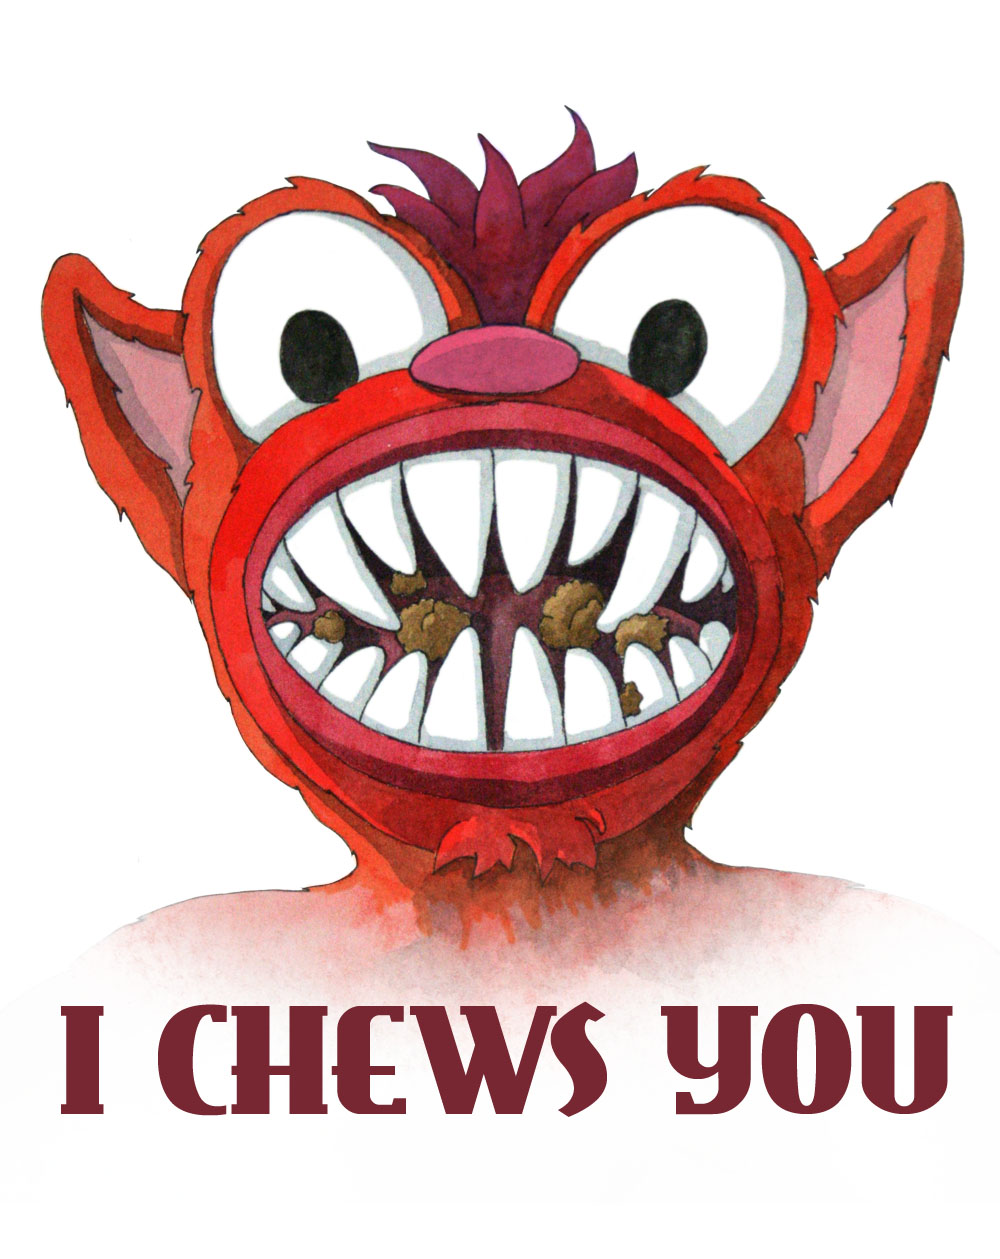 I Chews You Illustration of Monster Eating Things